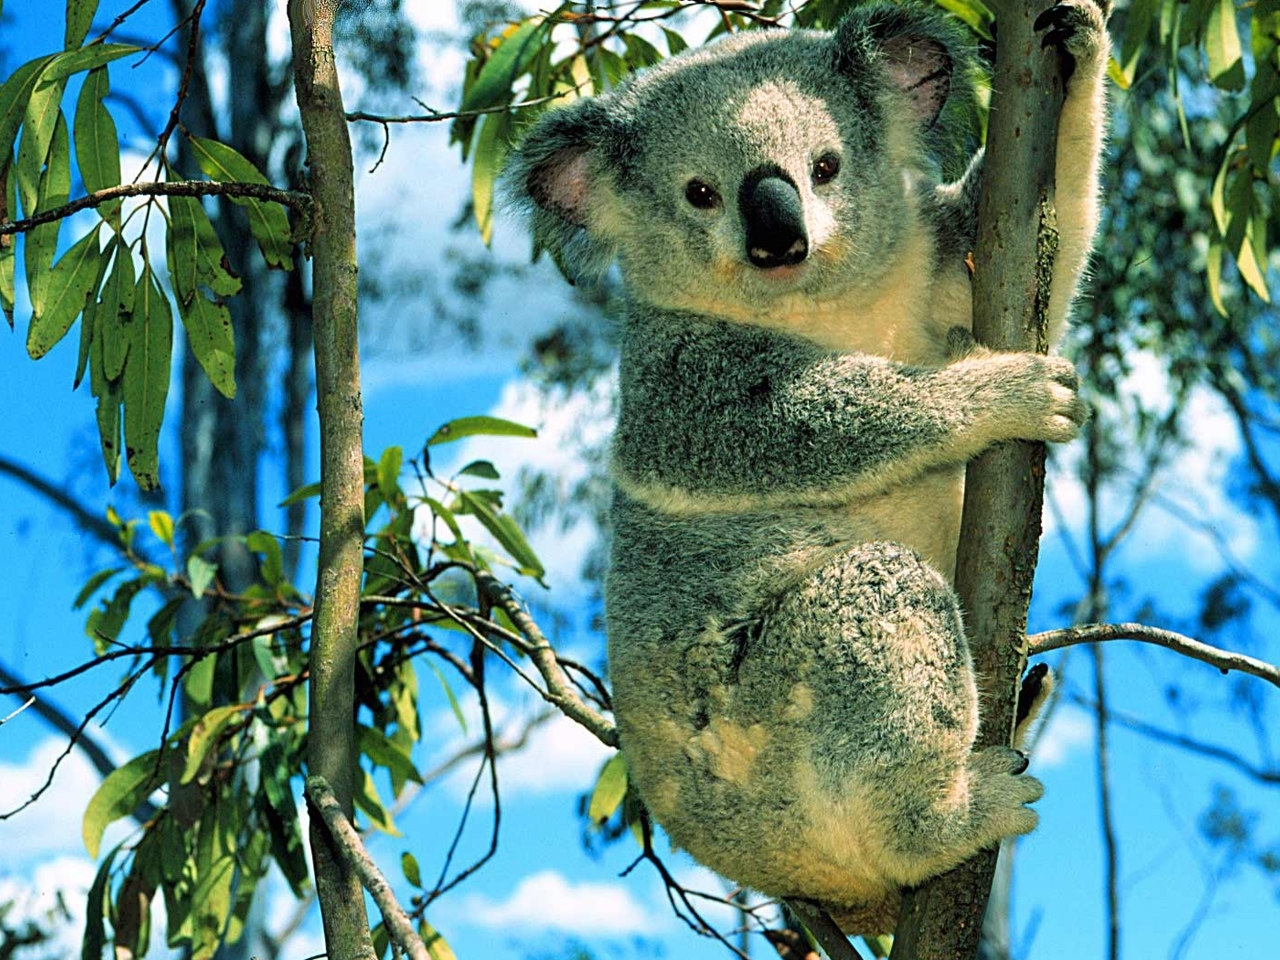 40204 download wallpaper Animals, Koalas screensavers and pictures for free